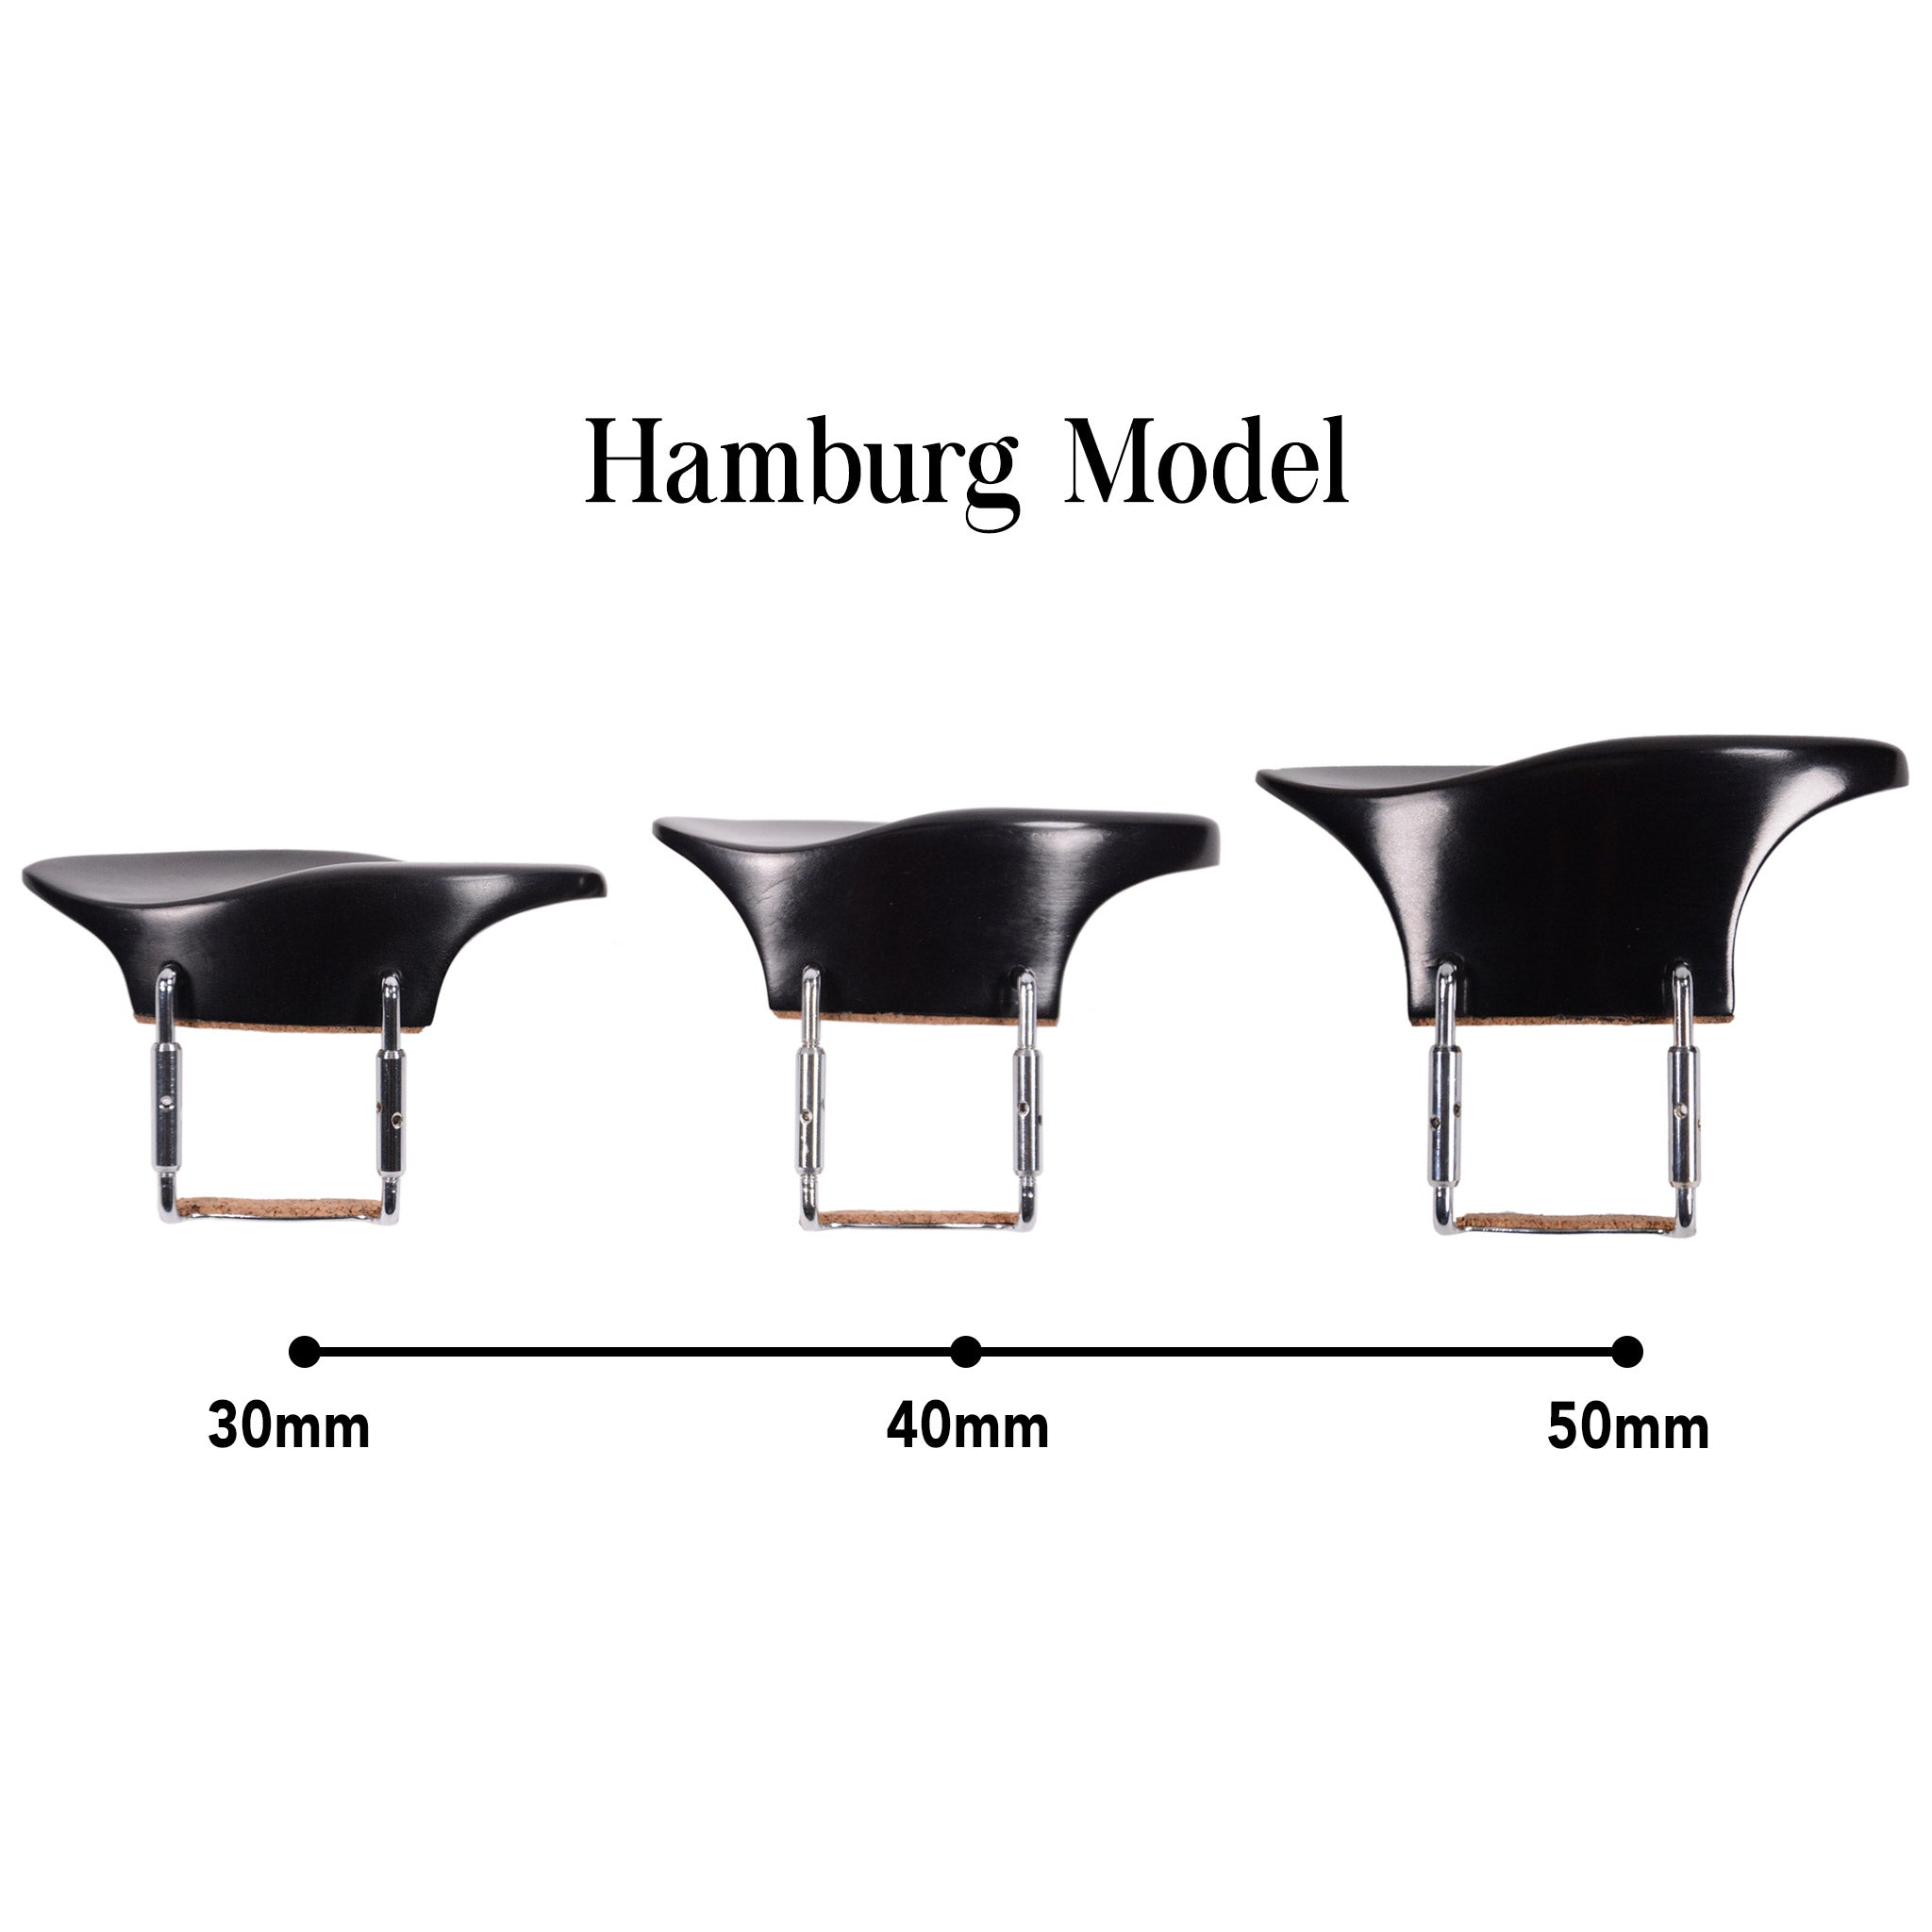 Extra Tall Violin Chinrest - Hamburg Model